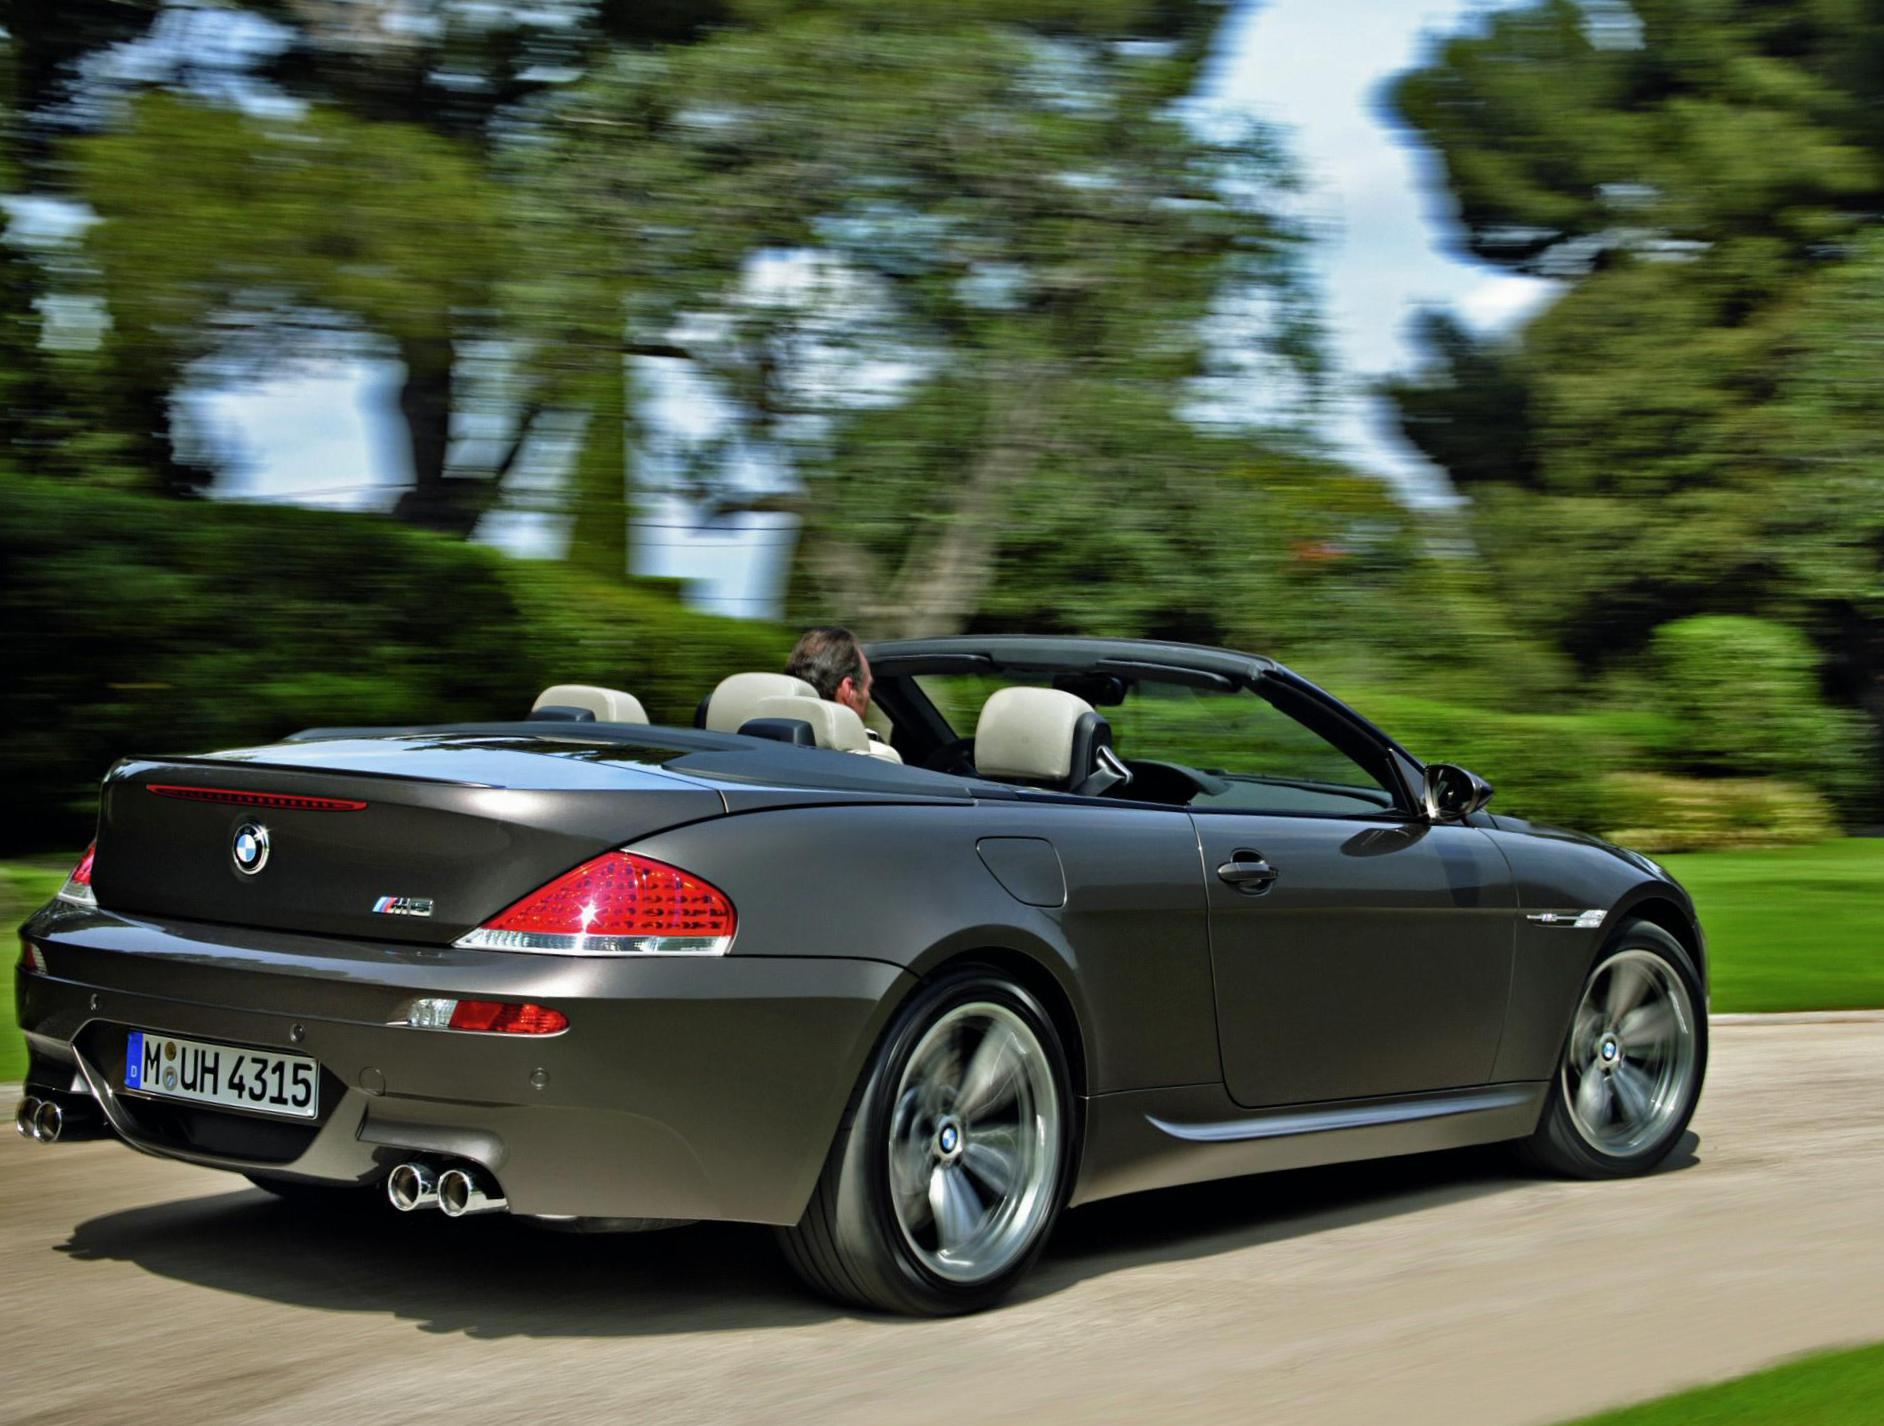 M6 Cabrio (E64) BMW prices cabriolet